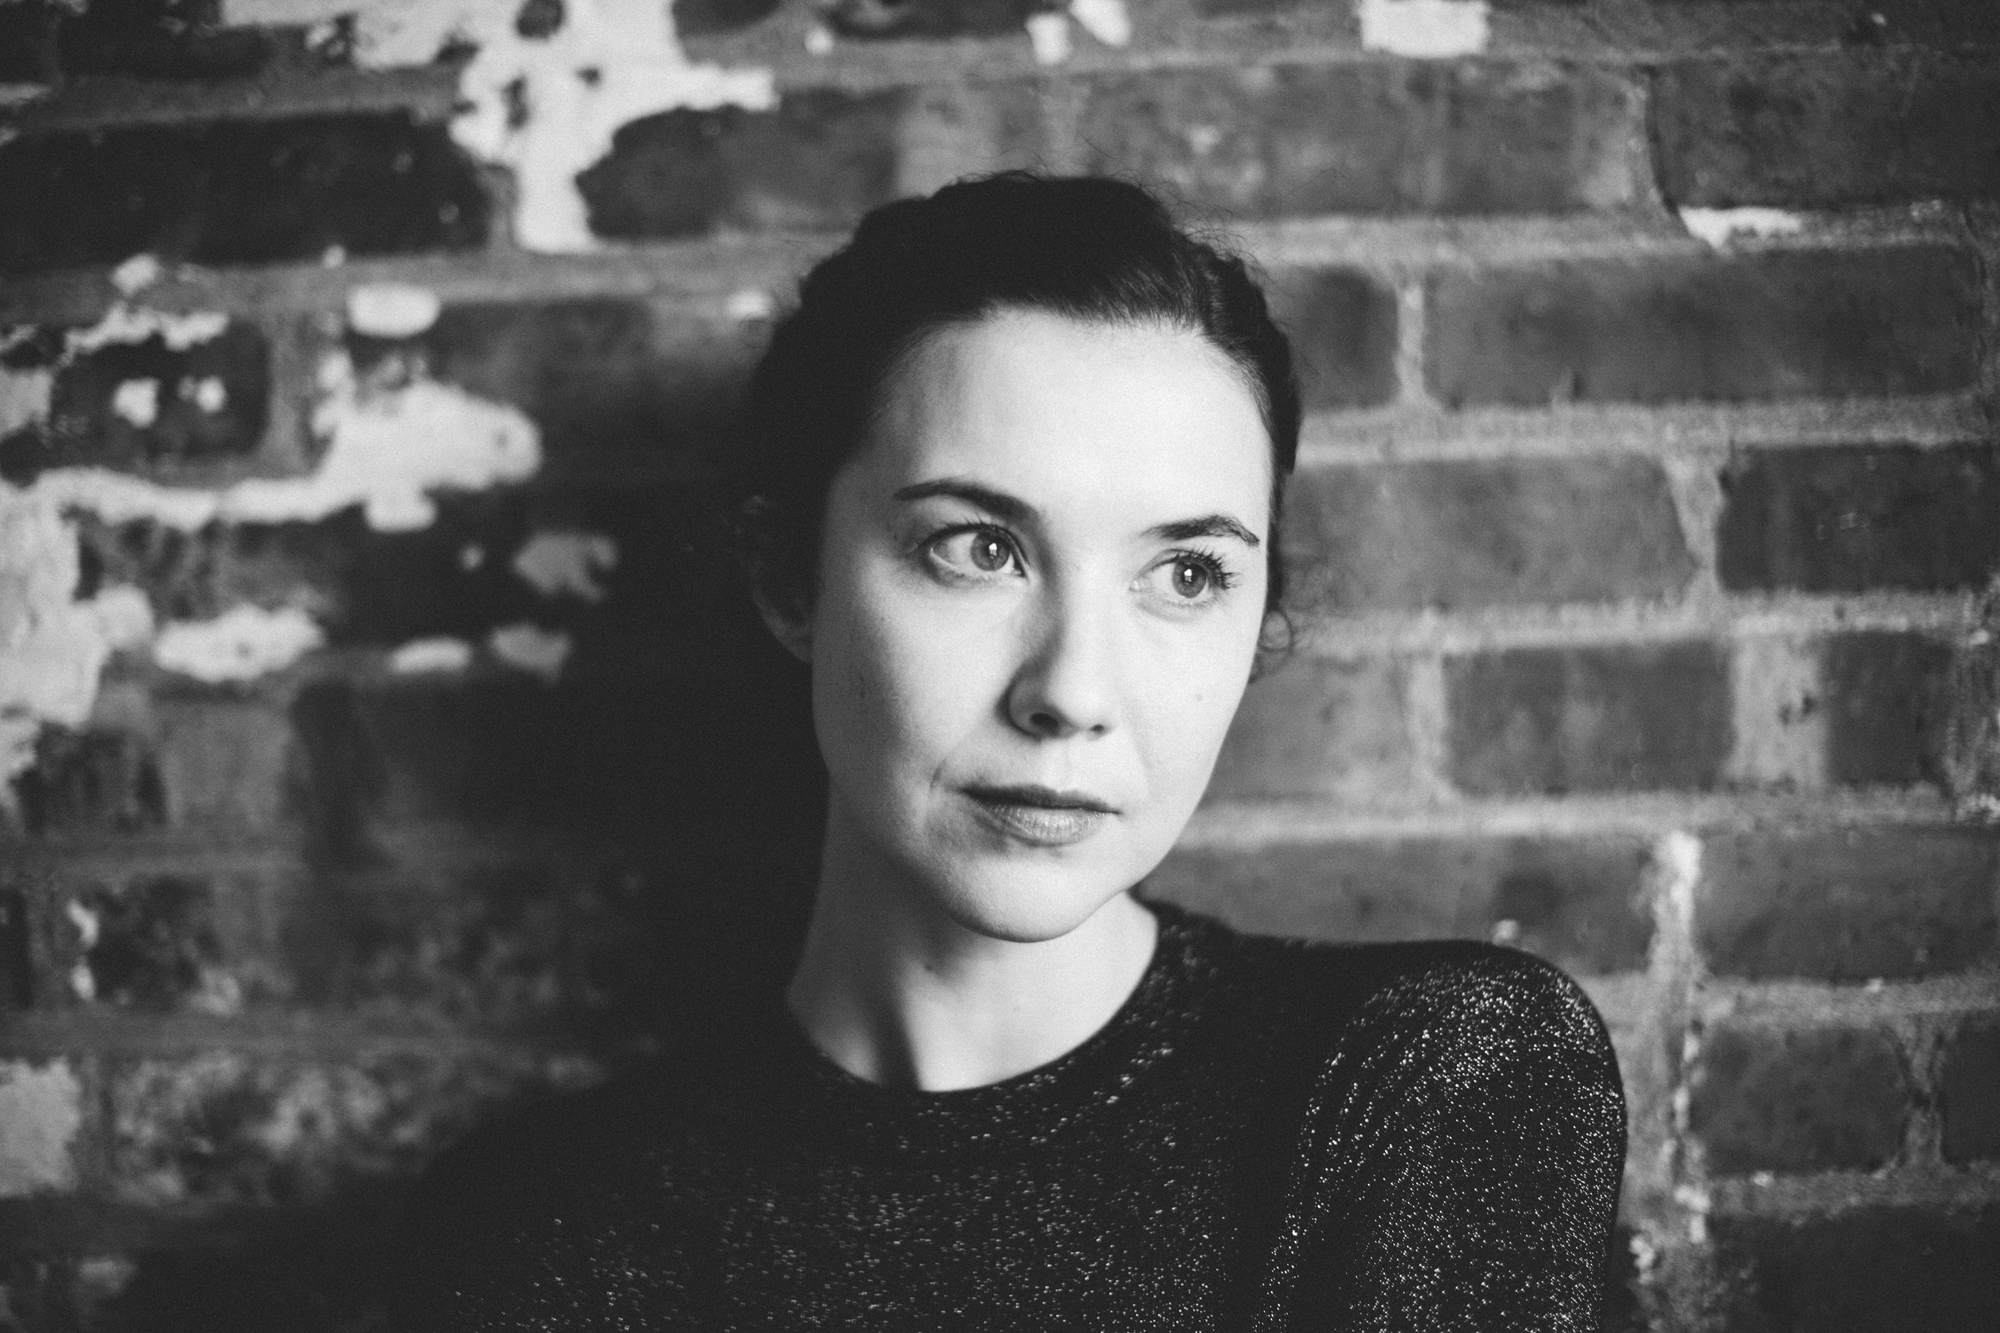 Reacting Melodically: A Conversation with Lisa Hannigan